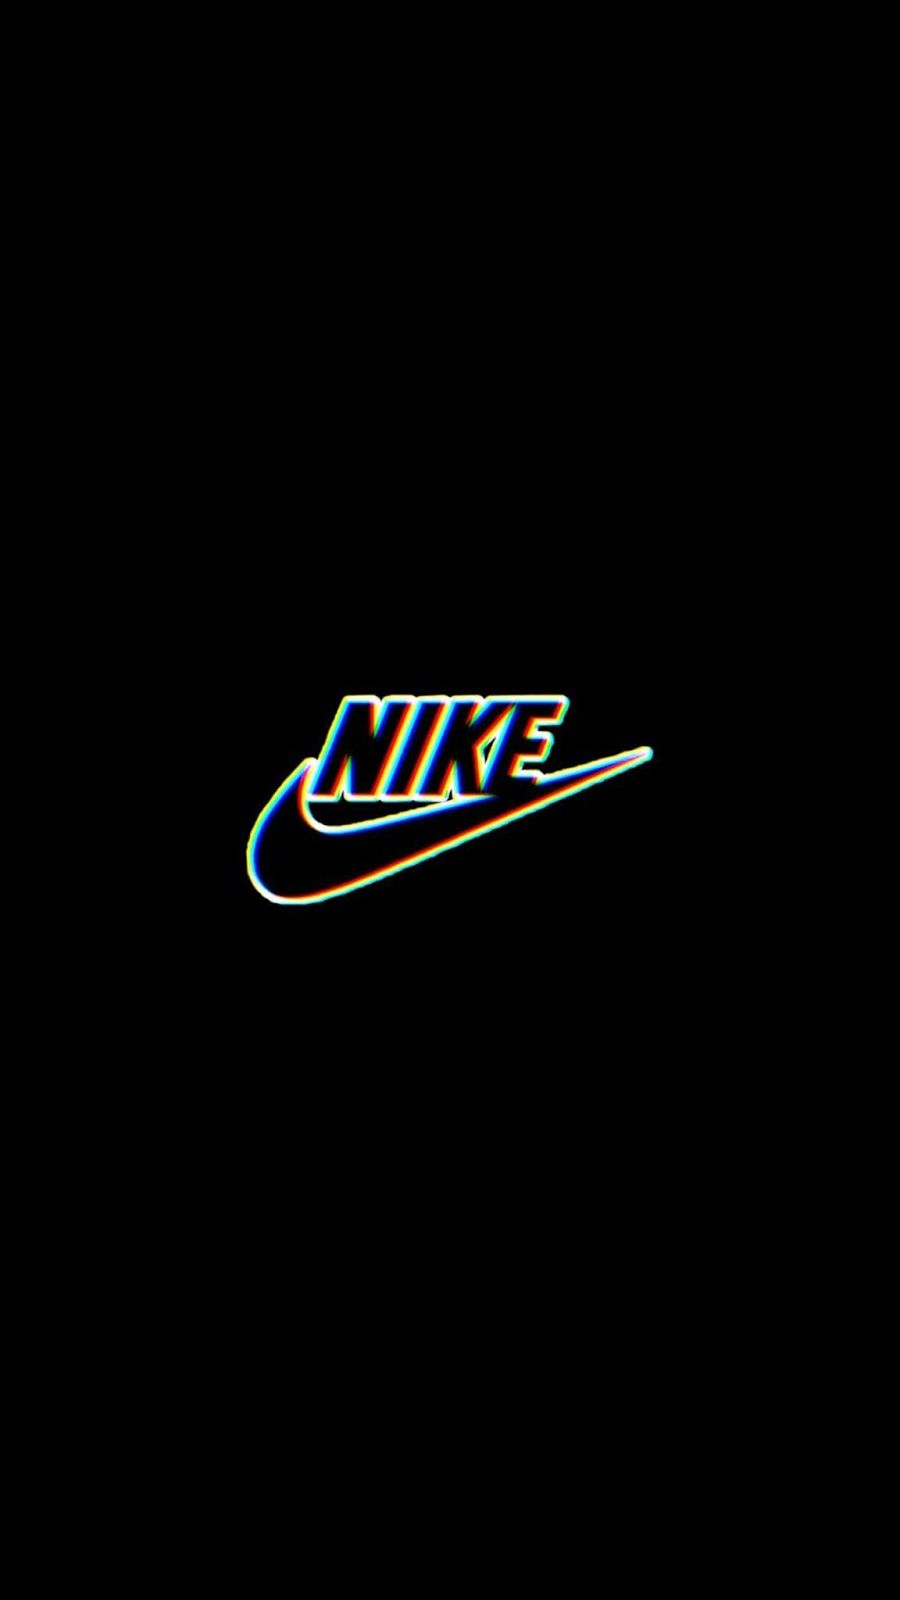 Nike Logo HD Wallpapers For Iphone X, Iphone XR,Iphone 11